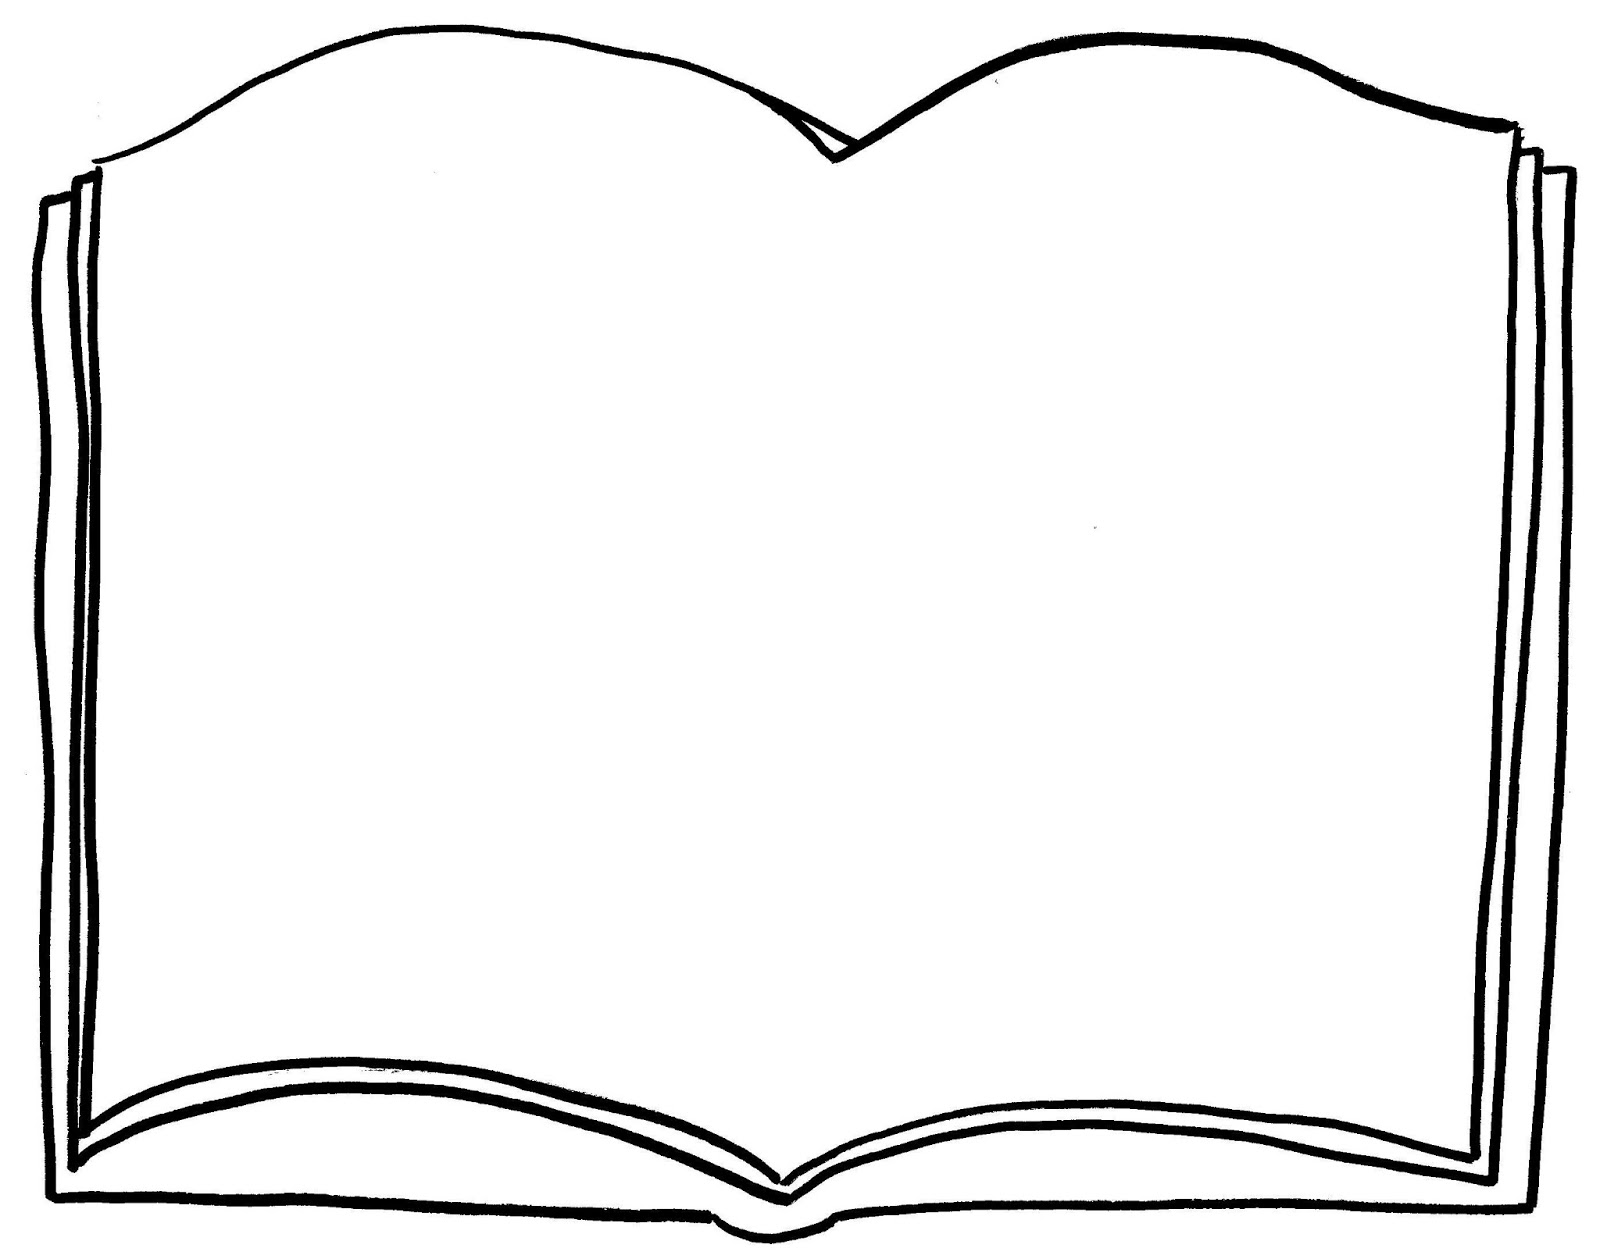 Open book cover clipart svg free library Open book cover yellow clipart - ClipartFest svg free library